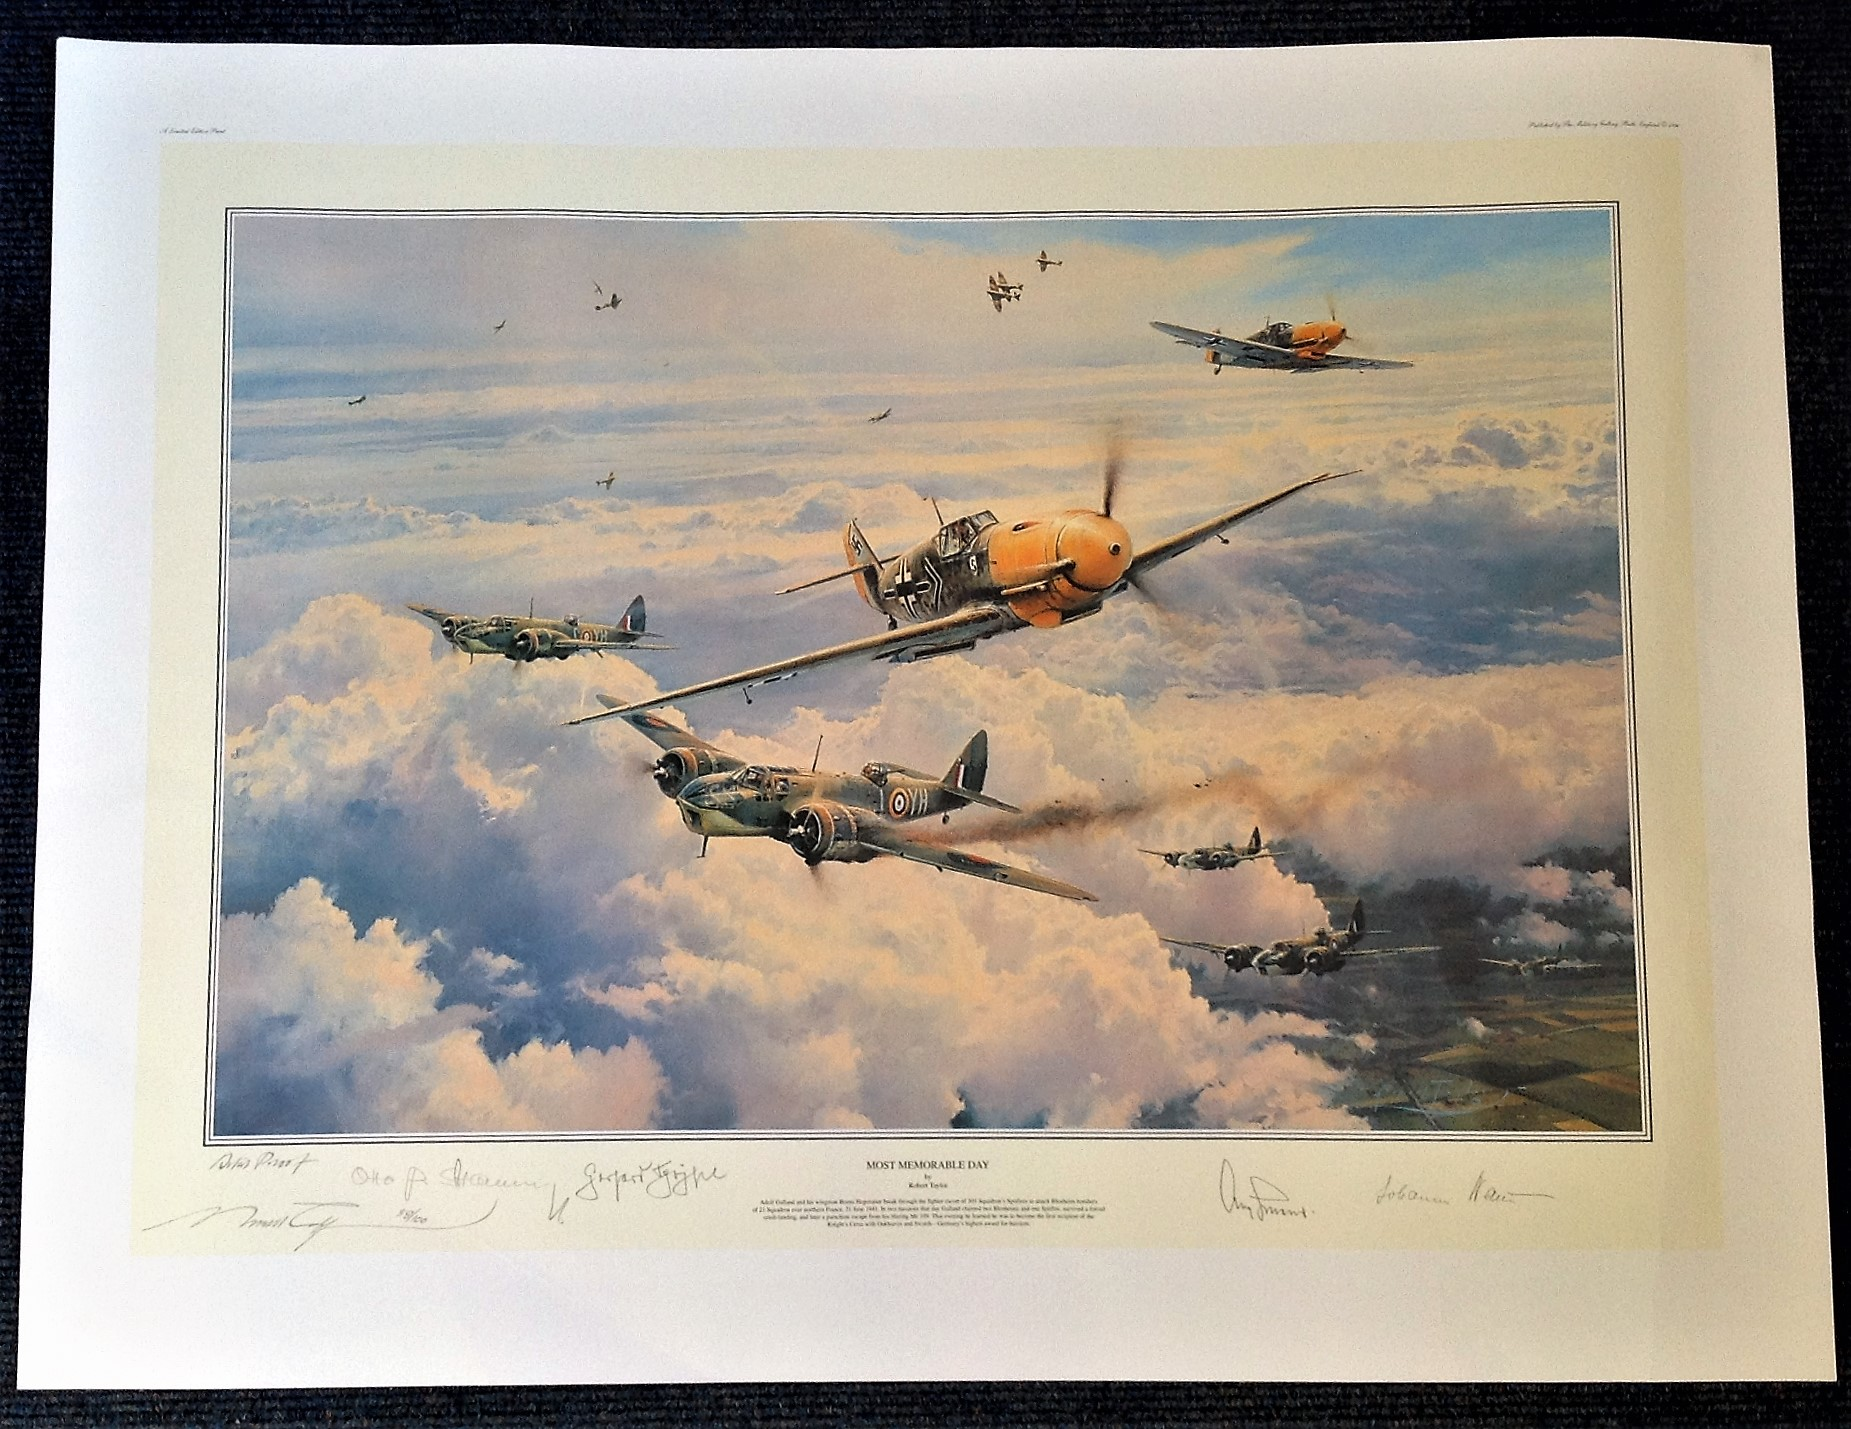 Robert Taylor 35x25 Most Memorable Day Artist Proof, AP, print 88 100 with 4 Luftwaffe signatures